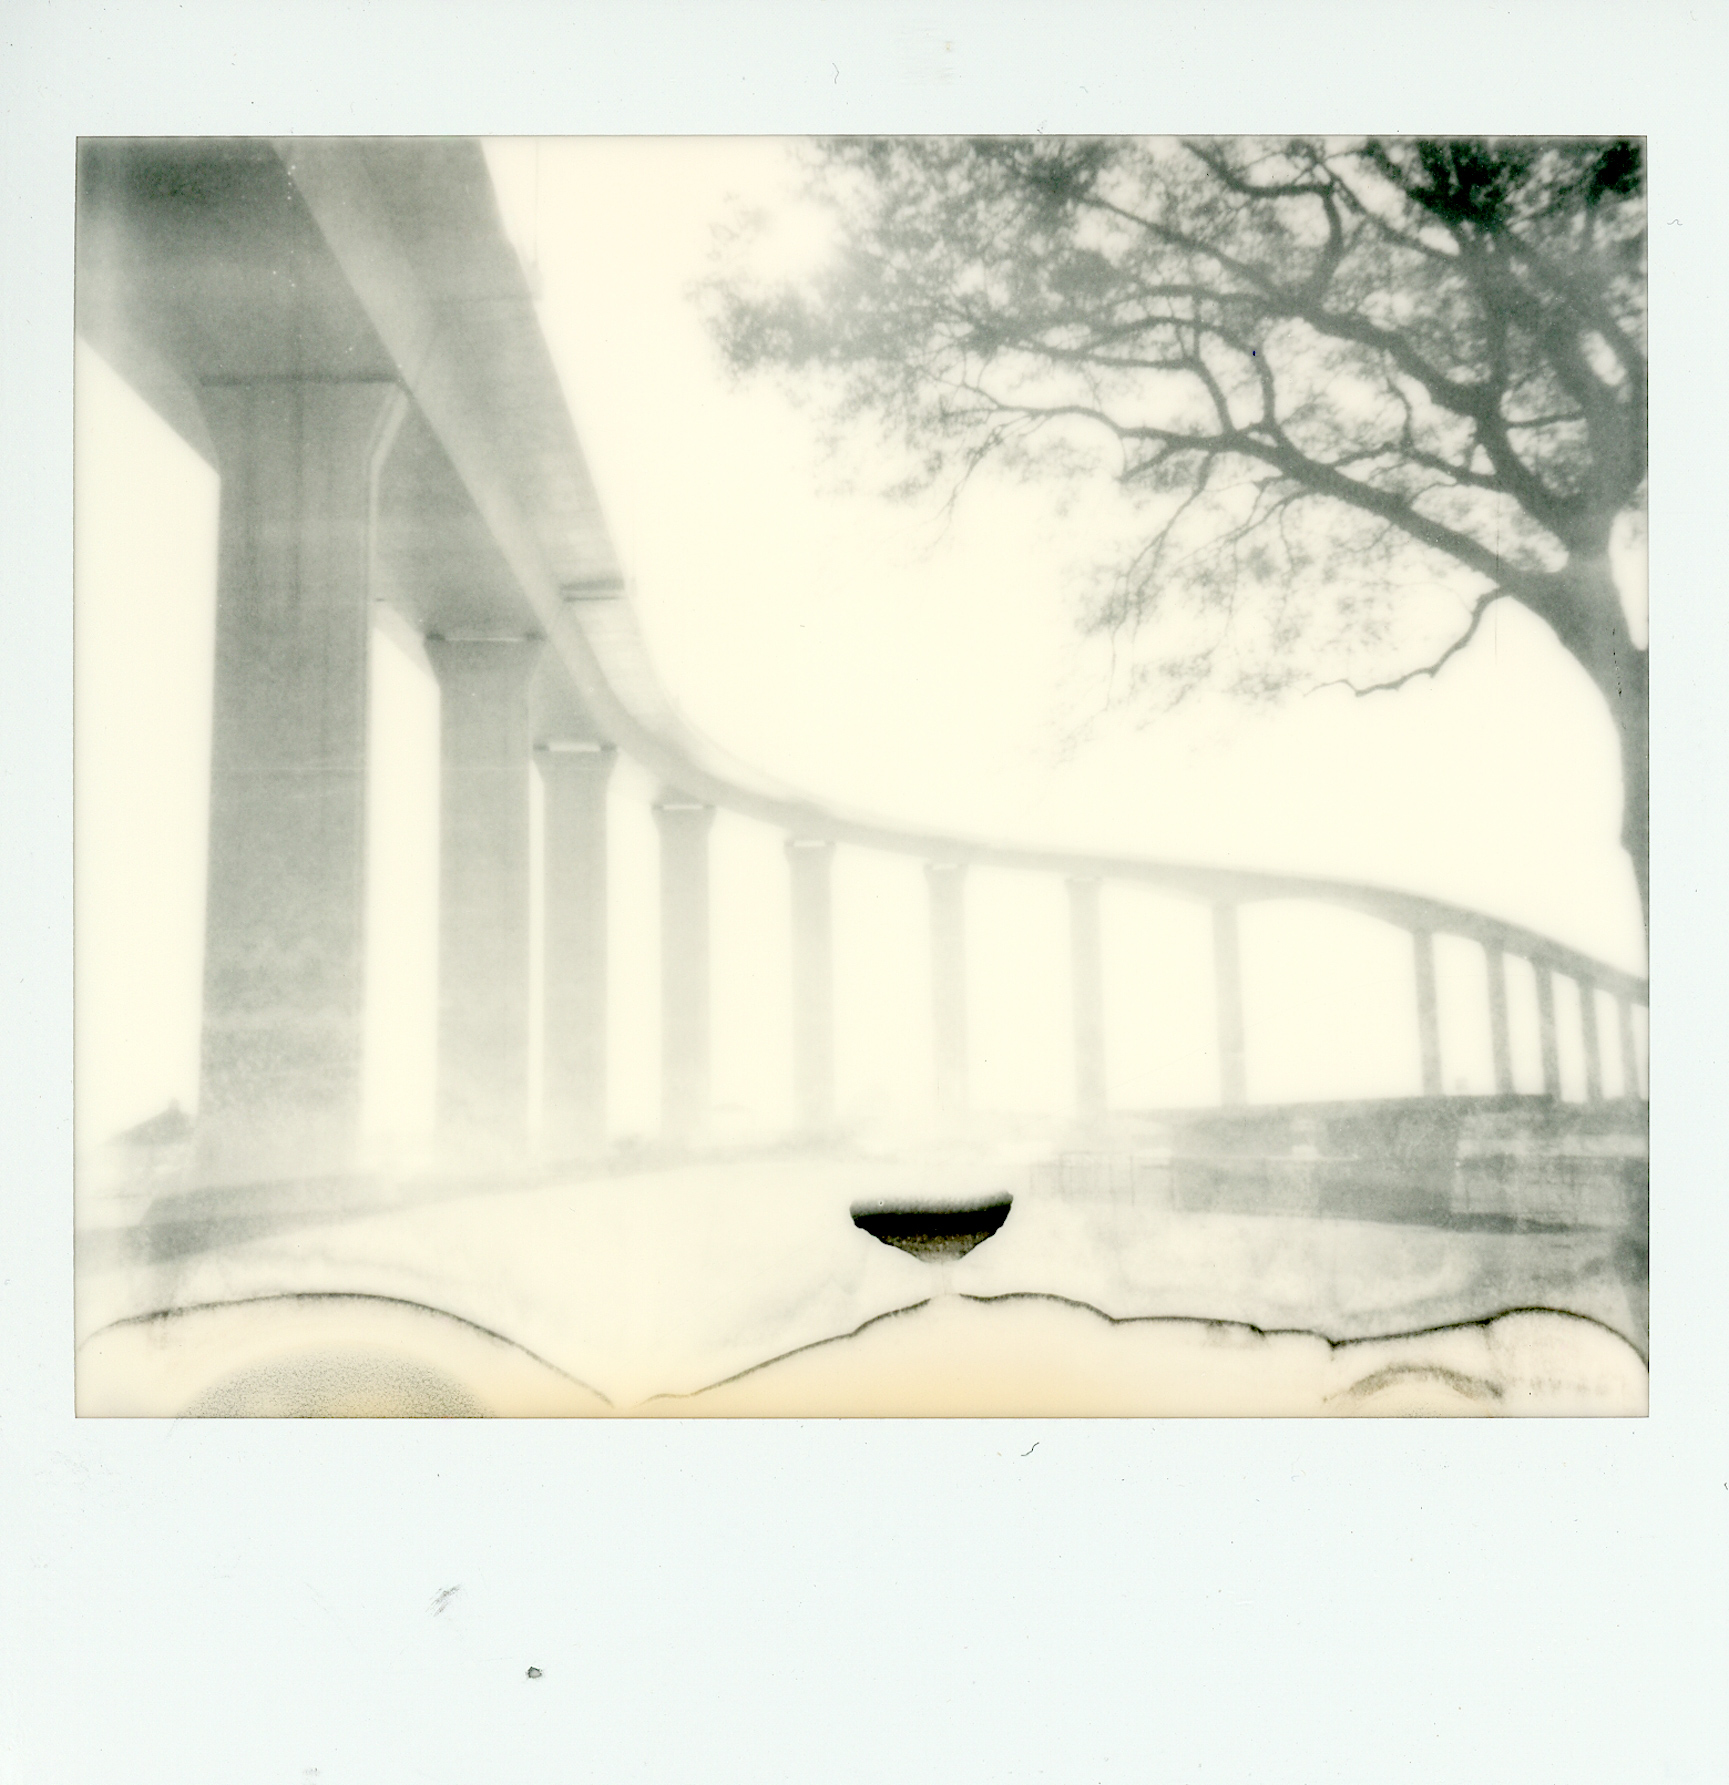 Journey Tree | Polaroid Spectra | Impossible Film | Victor Perrotti